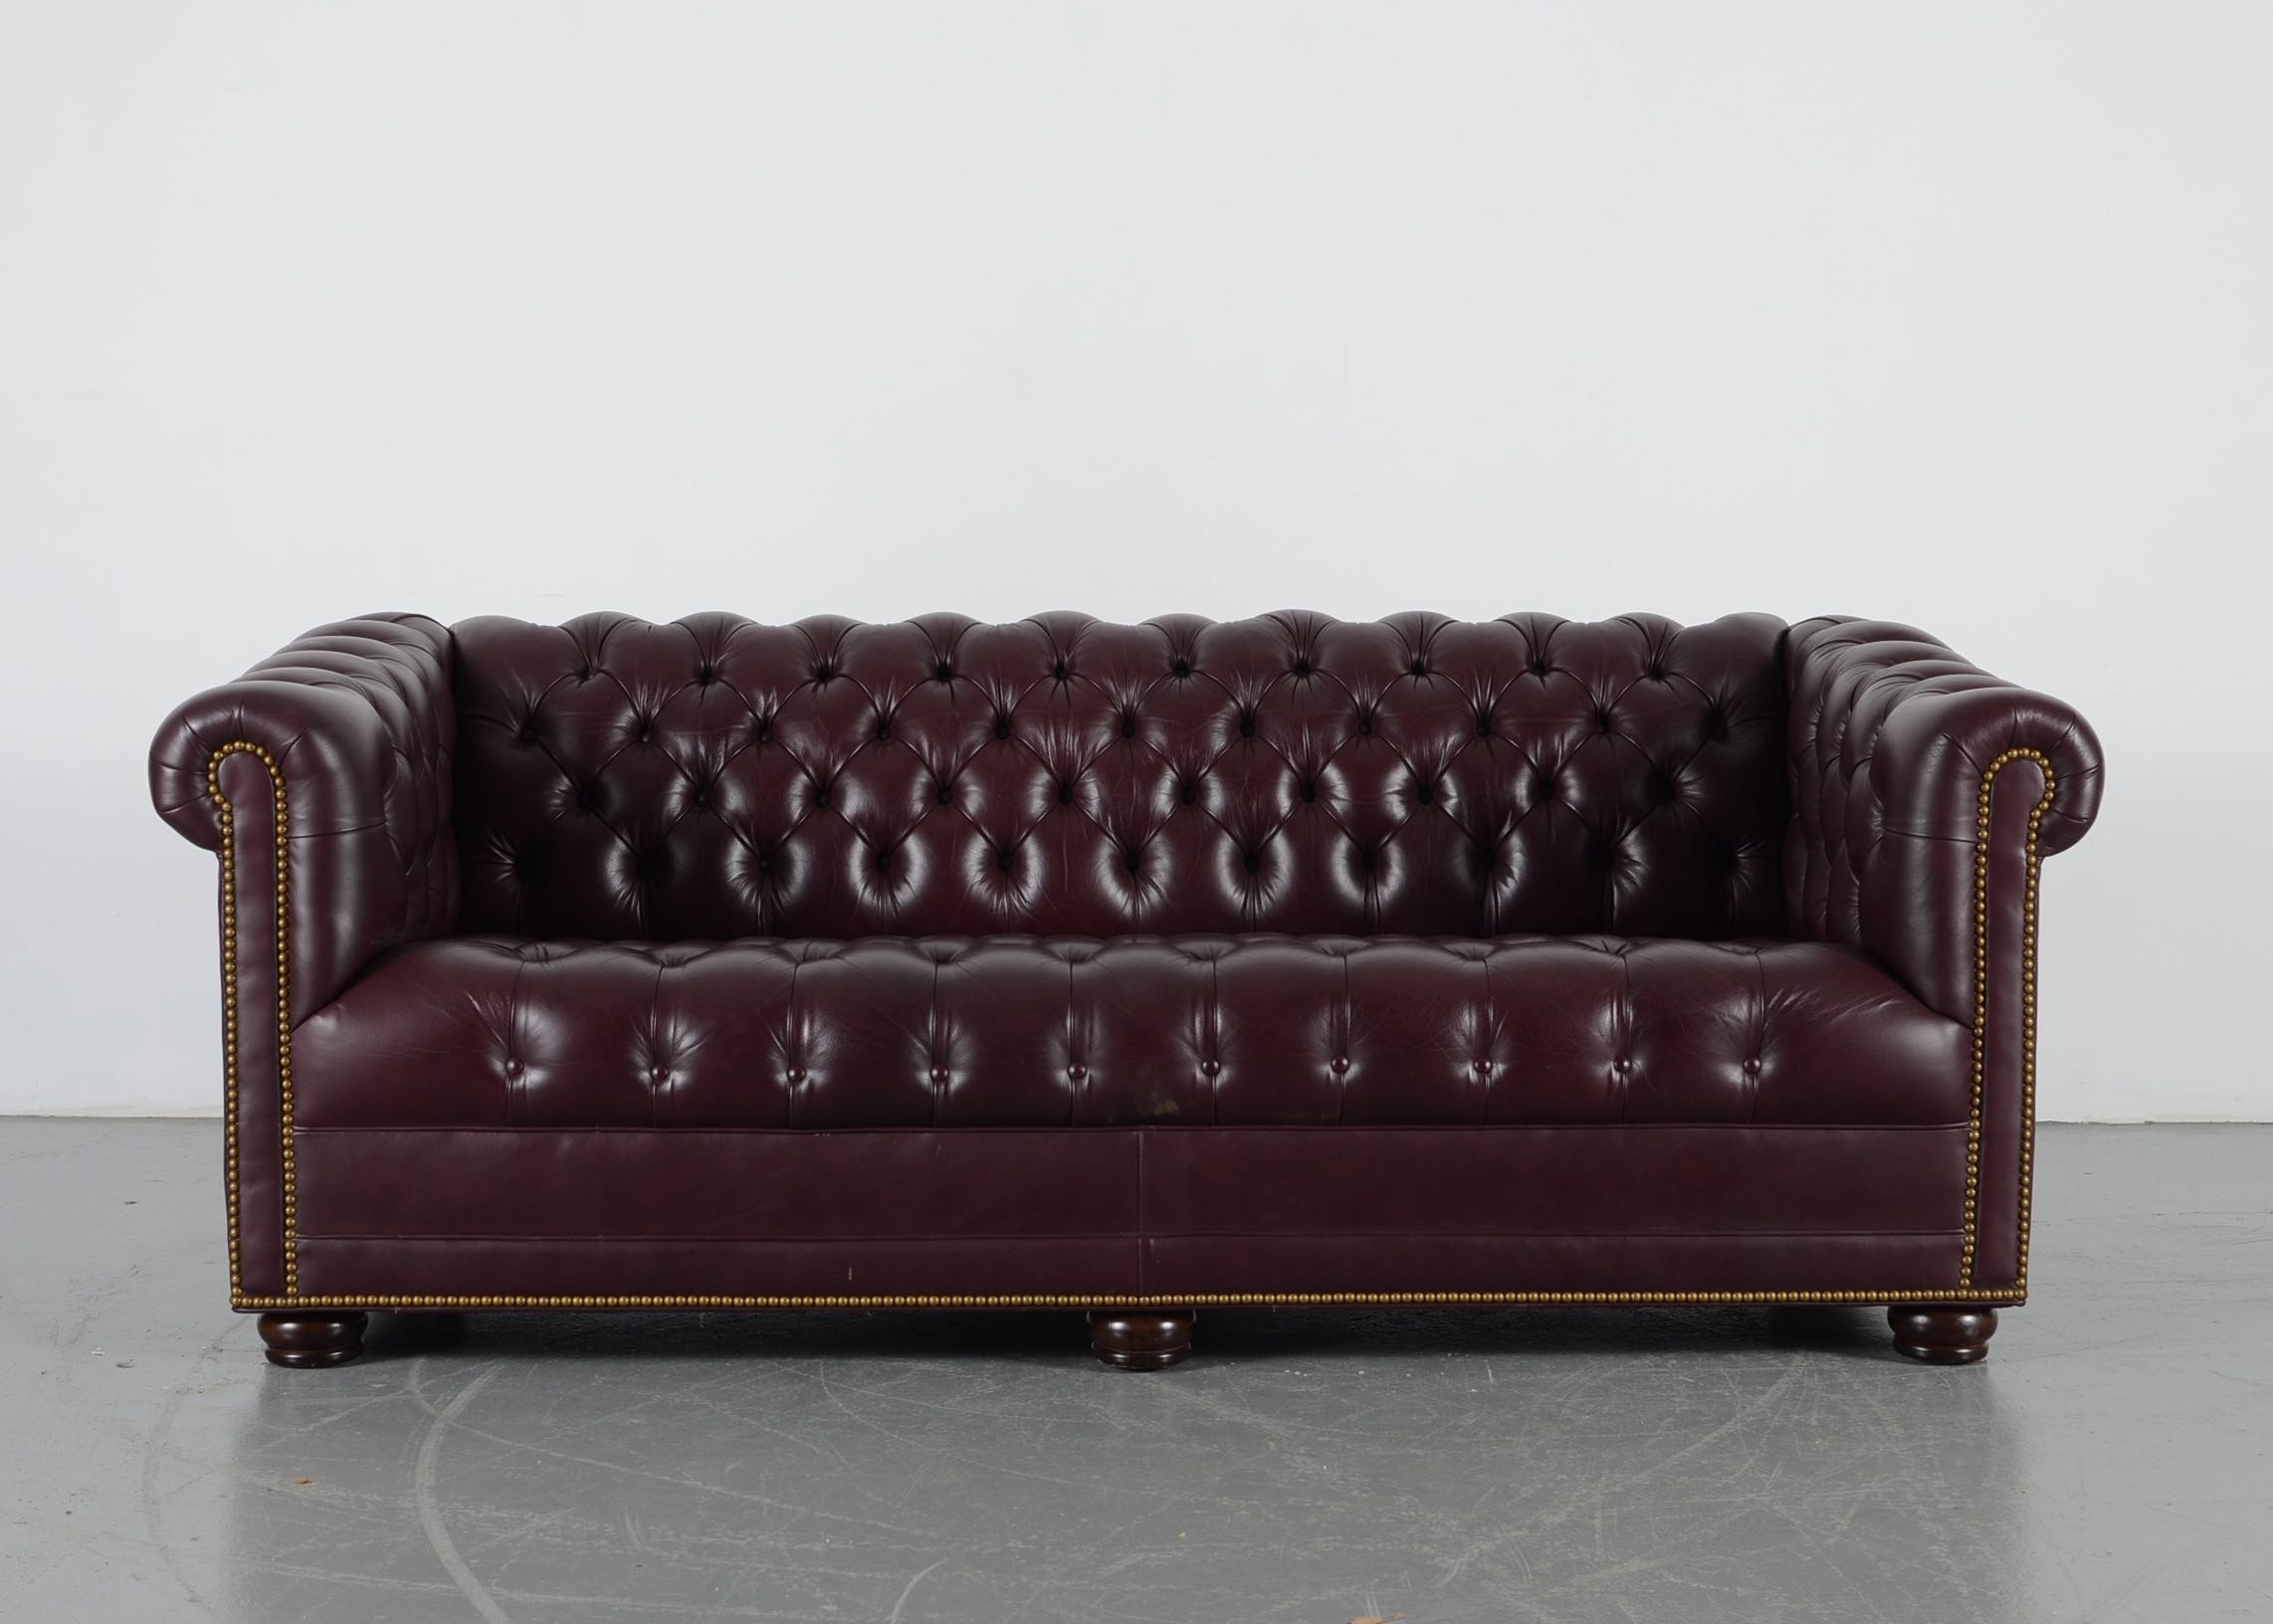 Hancock U0026 Moore Burgundy Tufted Leather Chesterfield Sofa ...